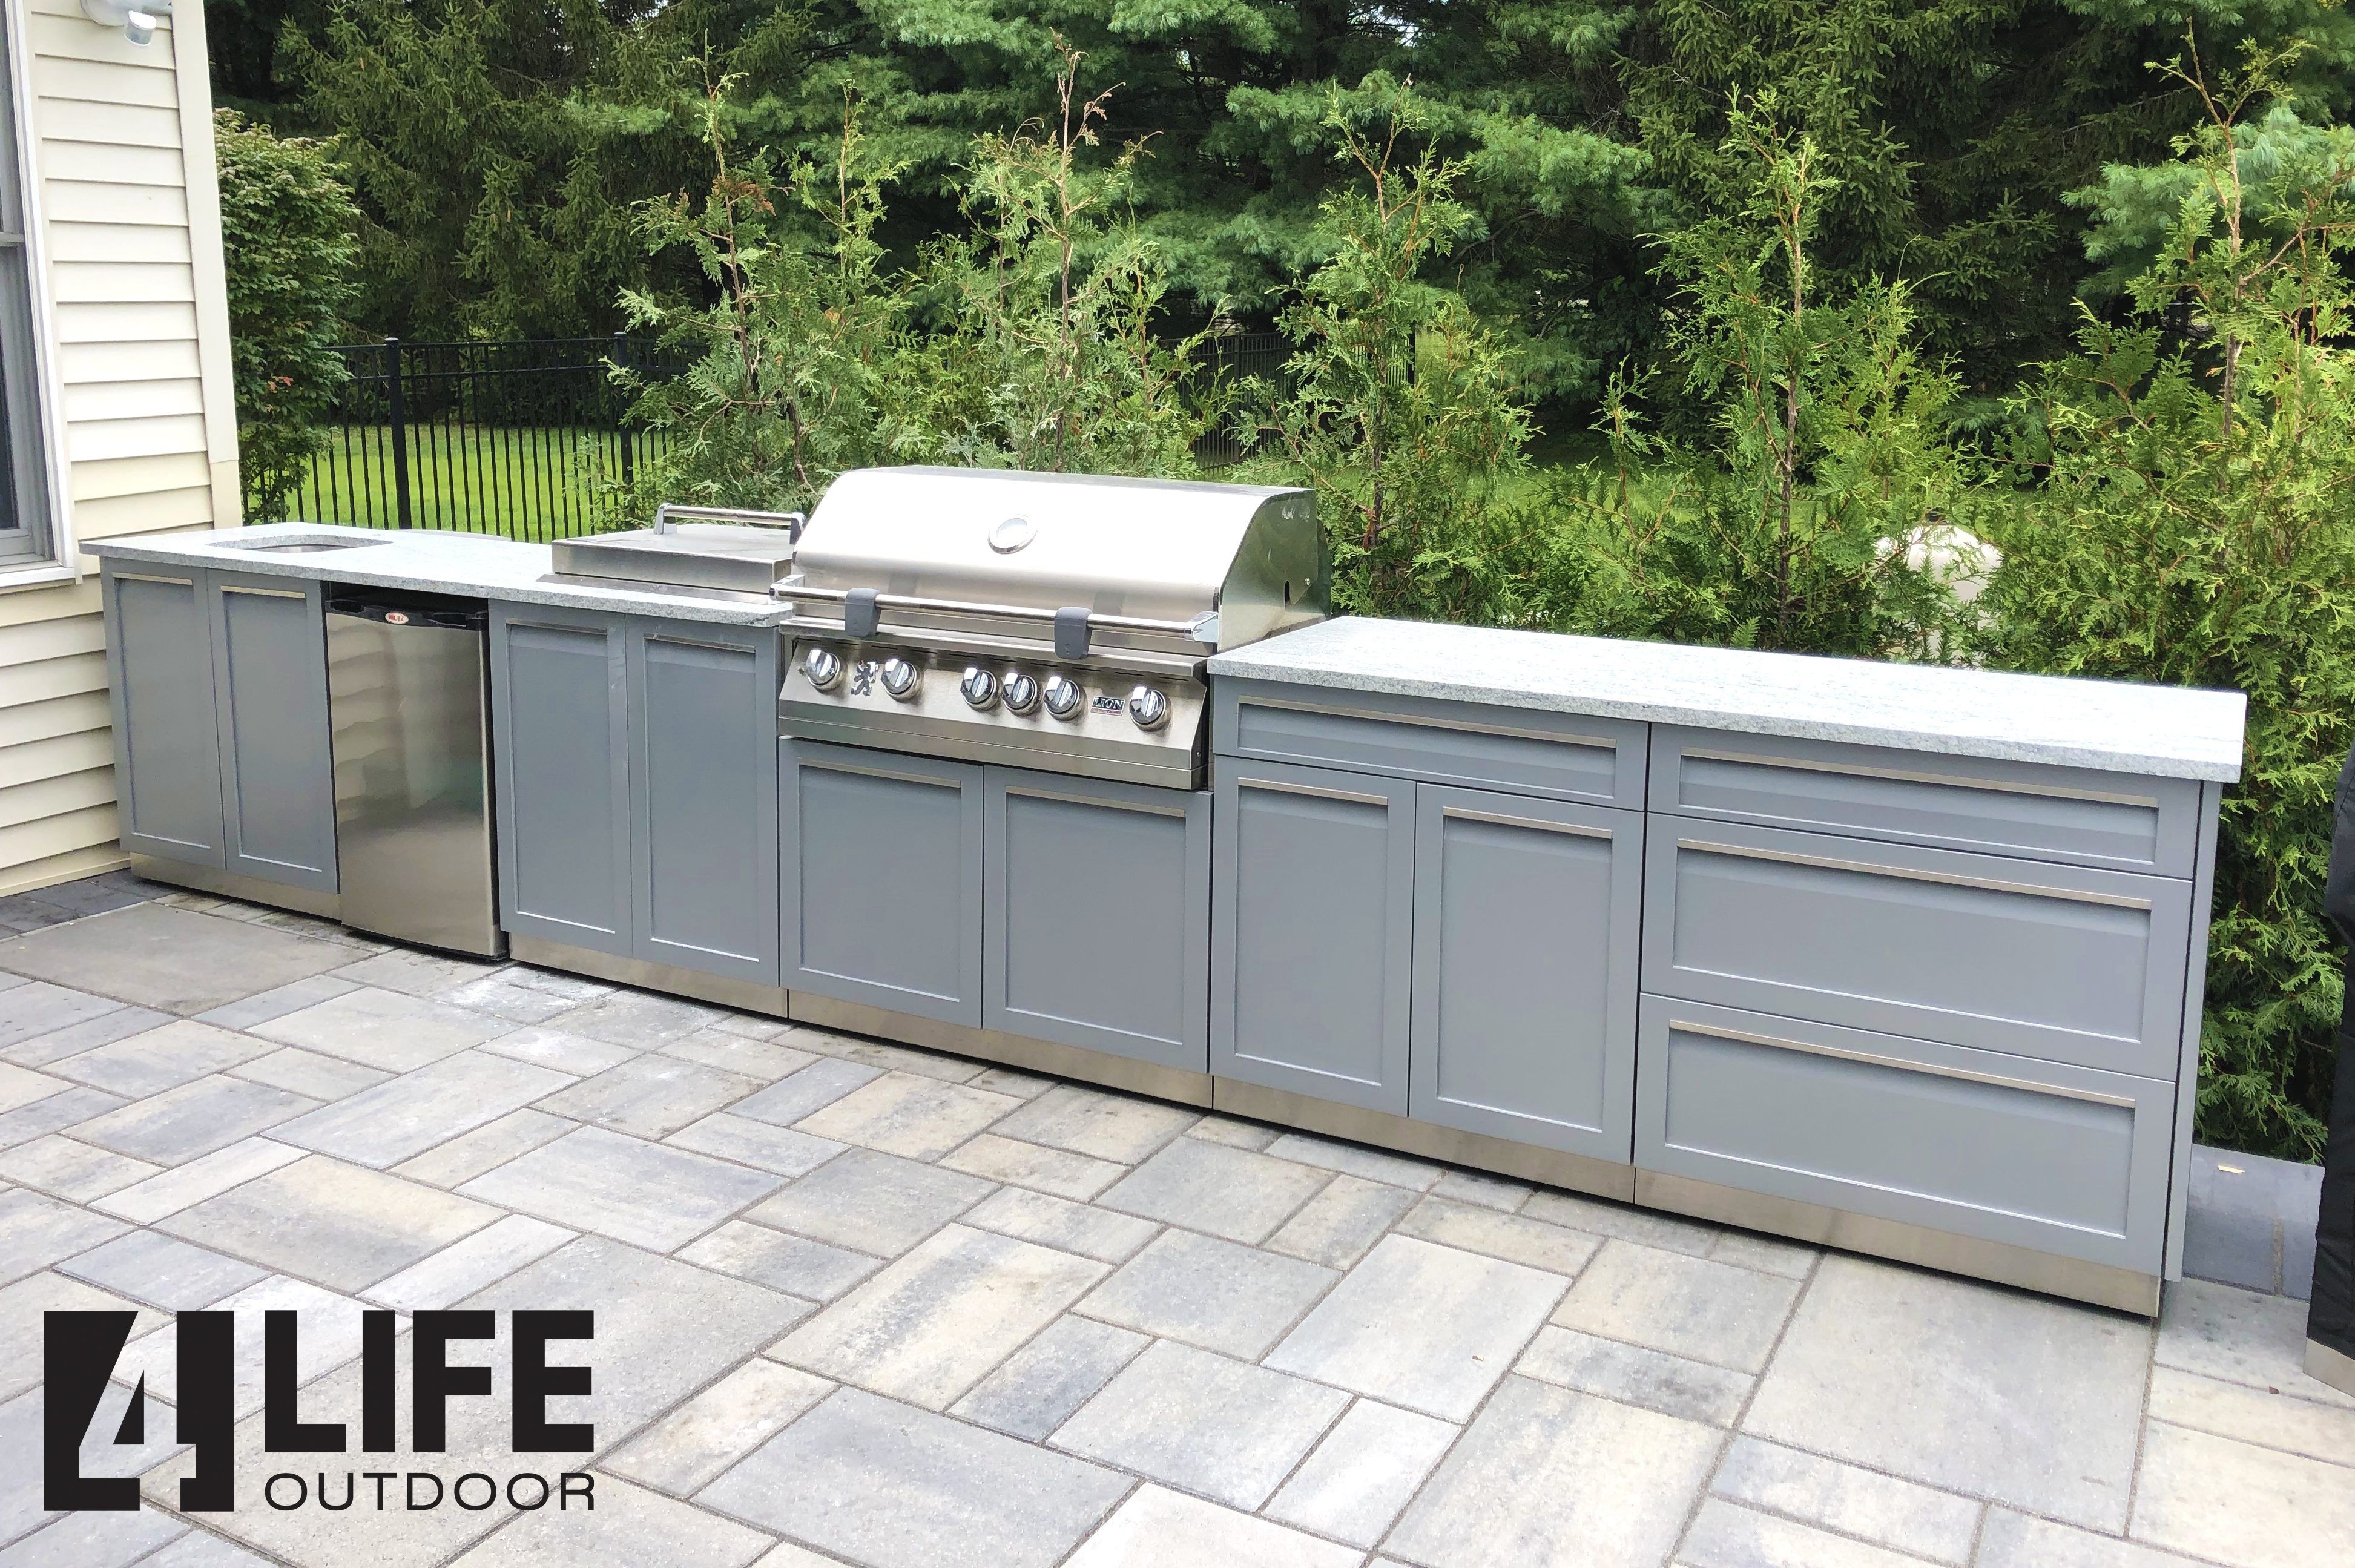 4 Piece Gray Stainless Outdoor Kitchen Cabinet Set 4 Life Outdoor Inc Outdoor Kitchen Cabinets Outdoor Kitchen Kitchen Set Cabinet